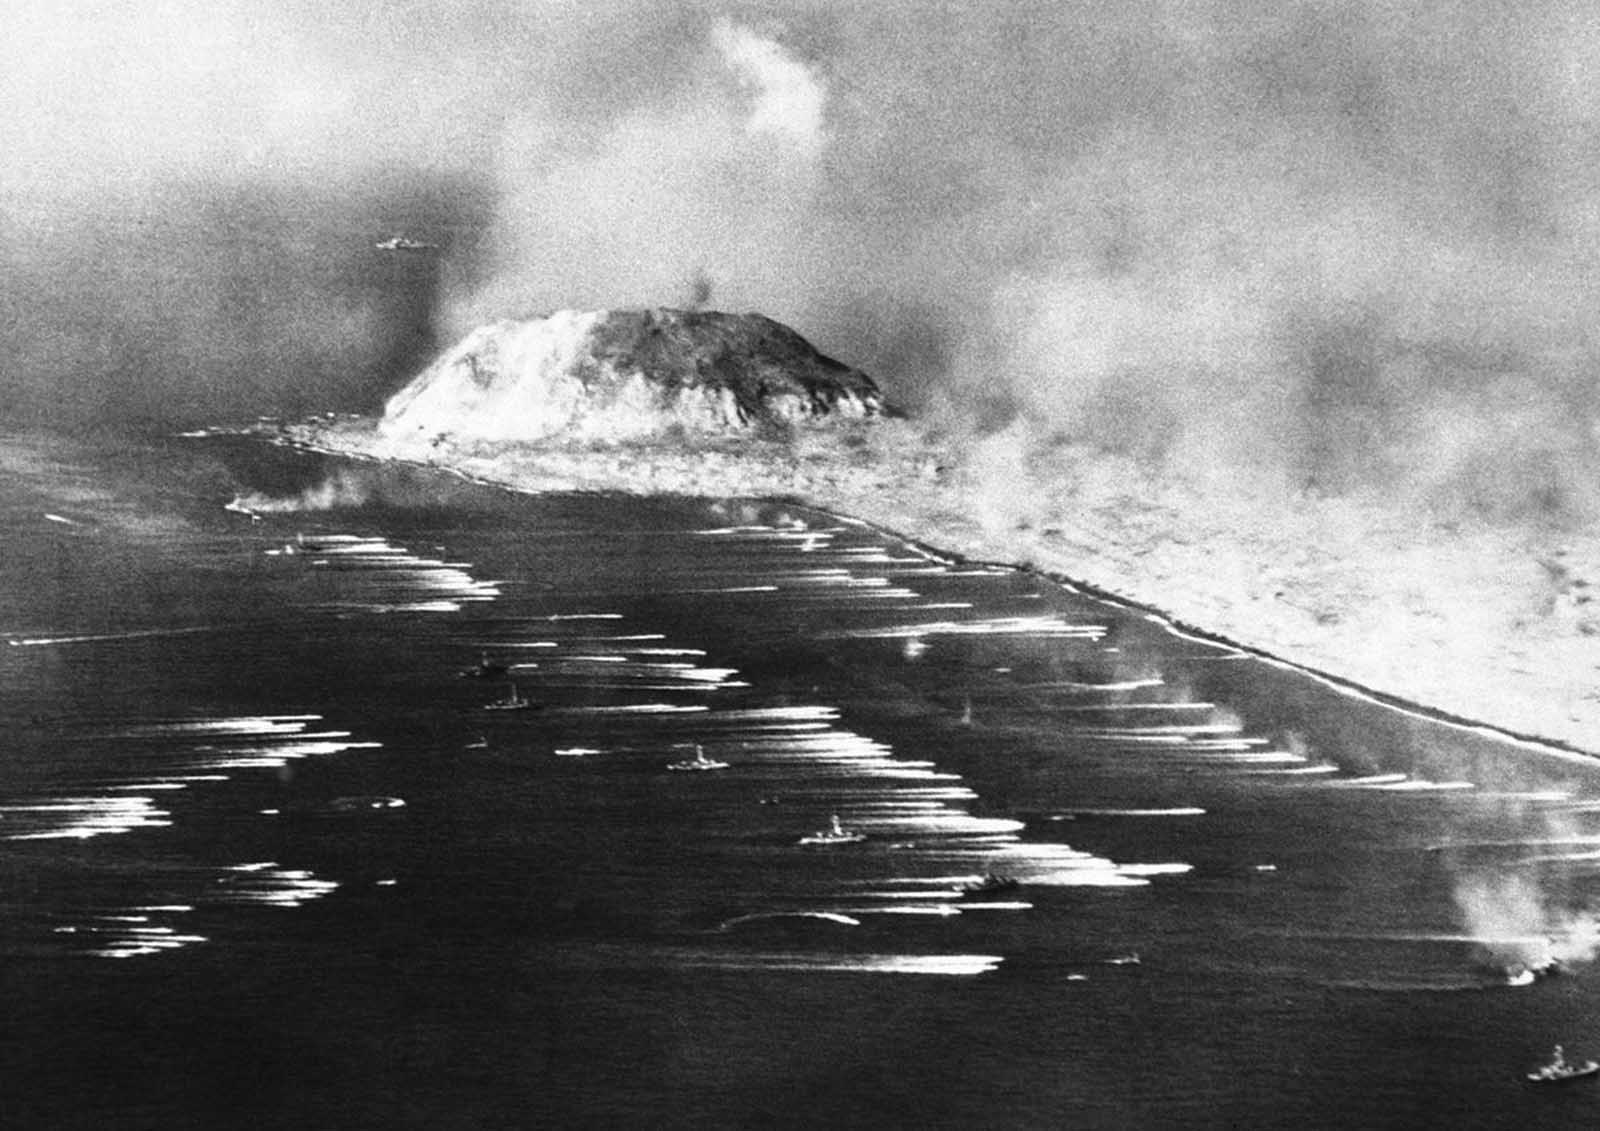 U.S. Marines going ashore at Iwo Jima, a Japanese Island which was invaded on February 19, 1945. Photo made by a Naval Photographer, who flew over the armada of Navy and coast guard vessels in a Navy search plane.